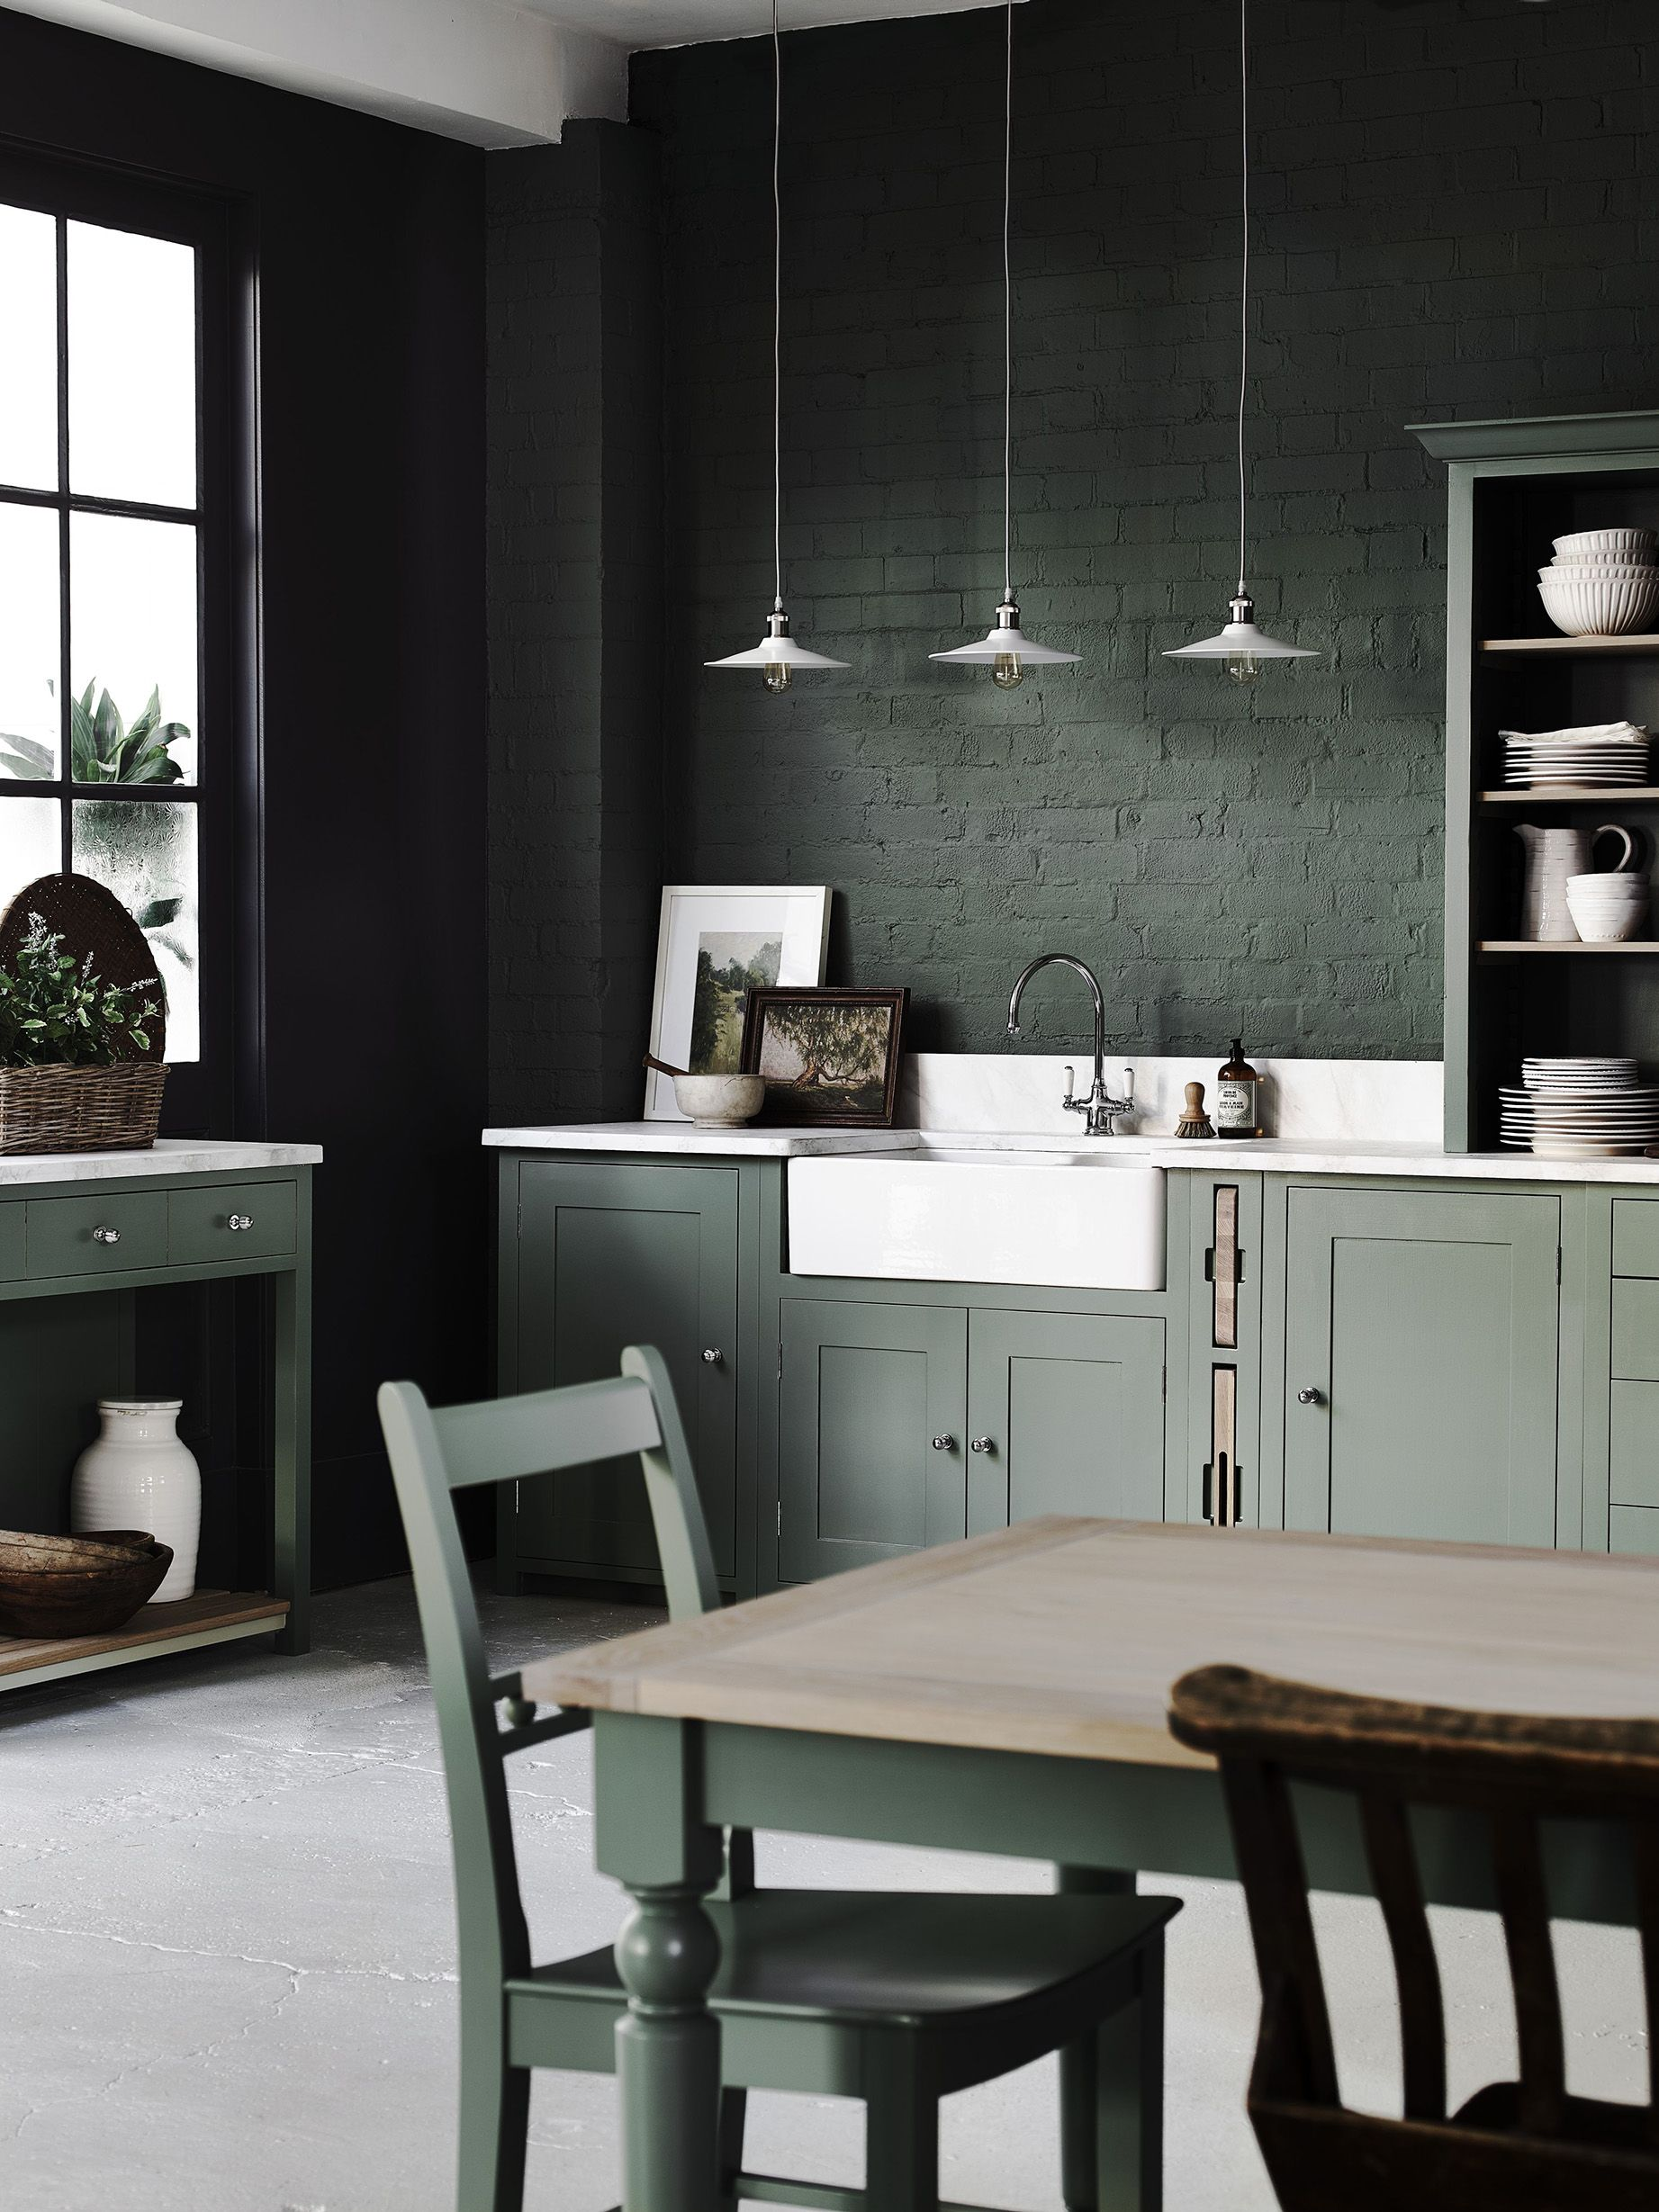 5 clever and stylish ideas for   brightening up a dark kitchen